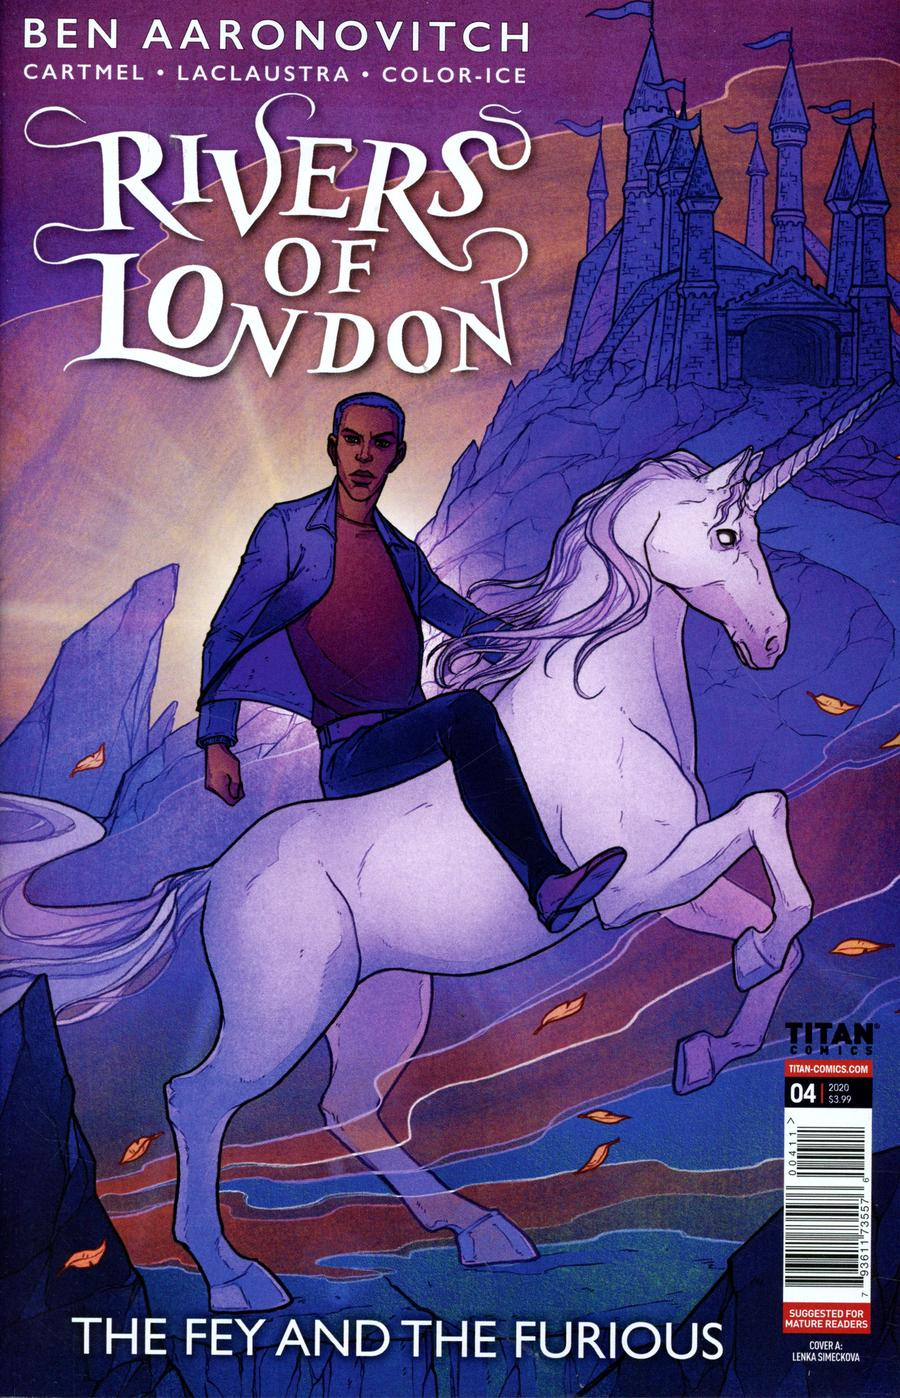 Rivers Of London The Fey And The Furious #4